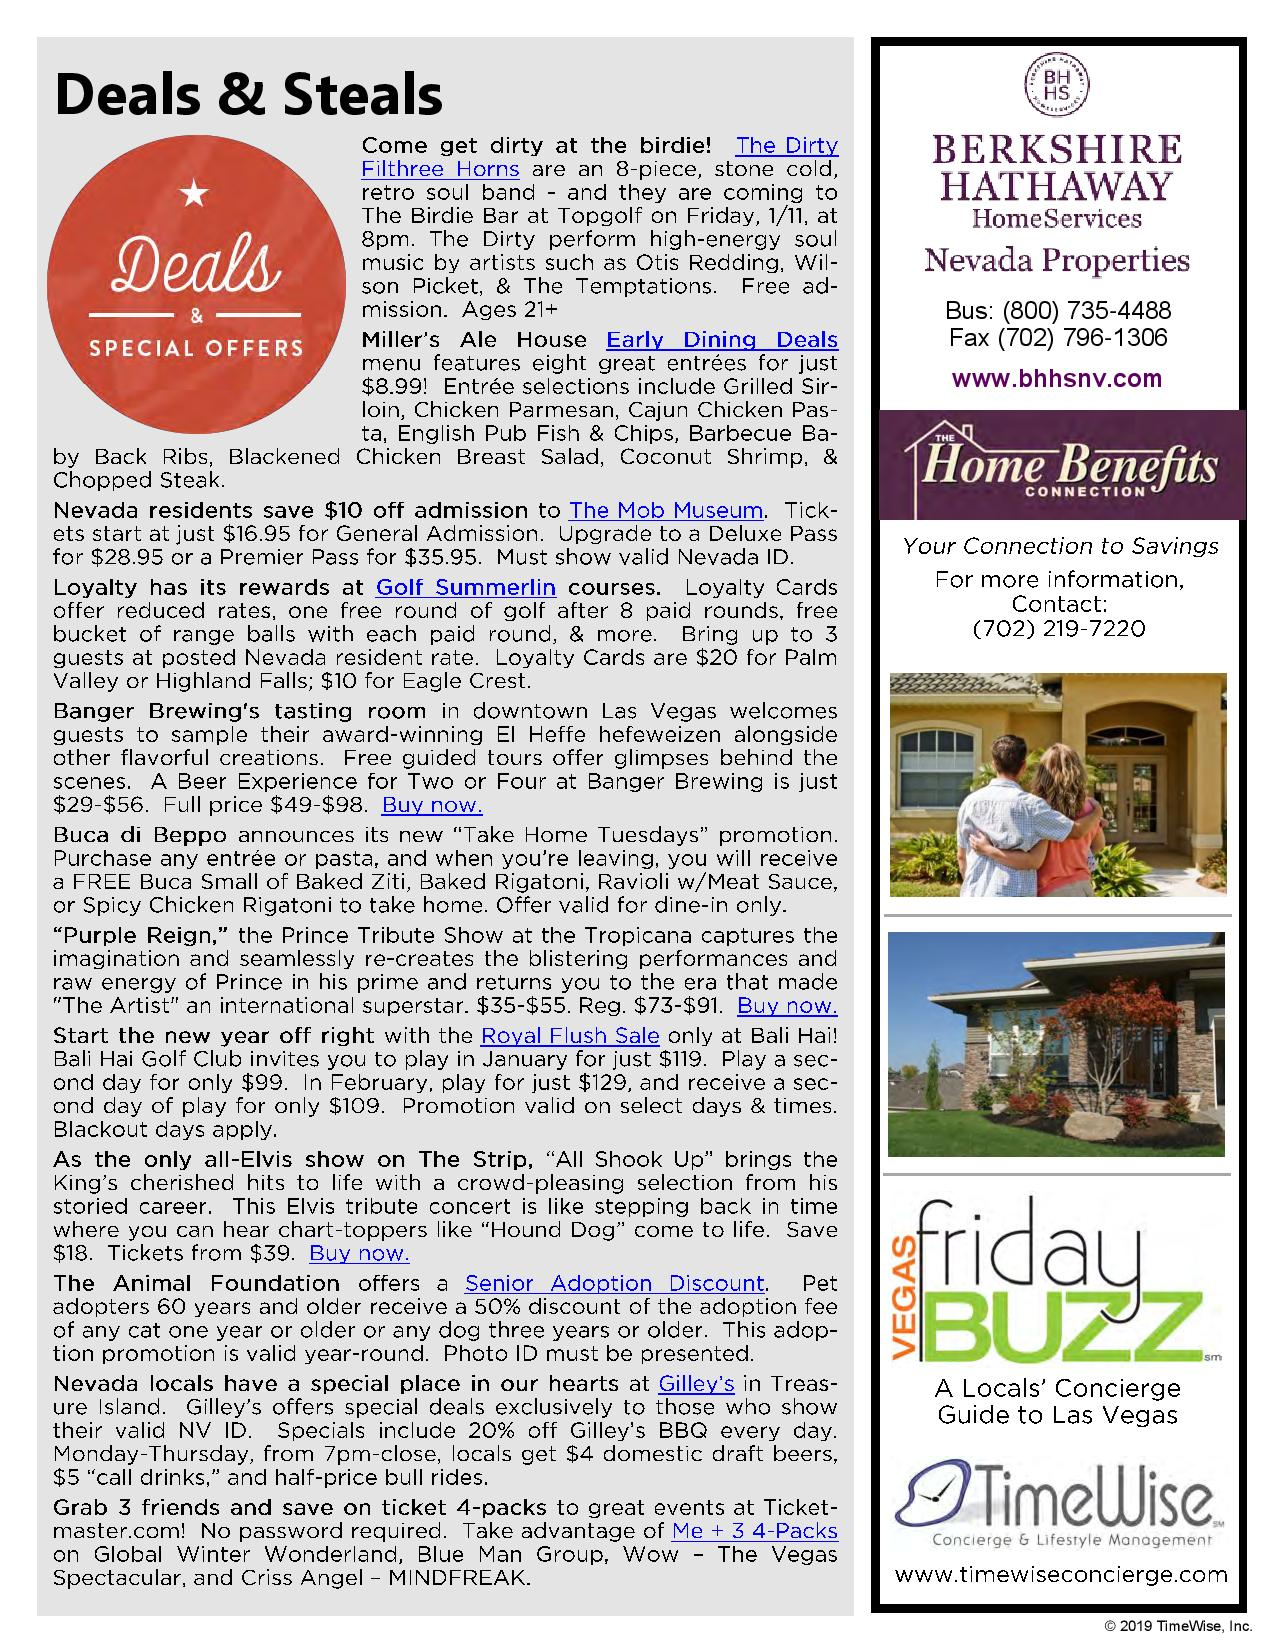 Berkshire-Hathaway-HomeServices-fridaybuzz Jan 11 2019-page-004